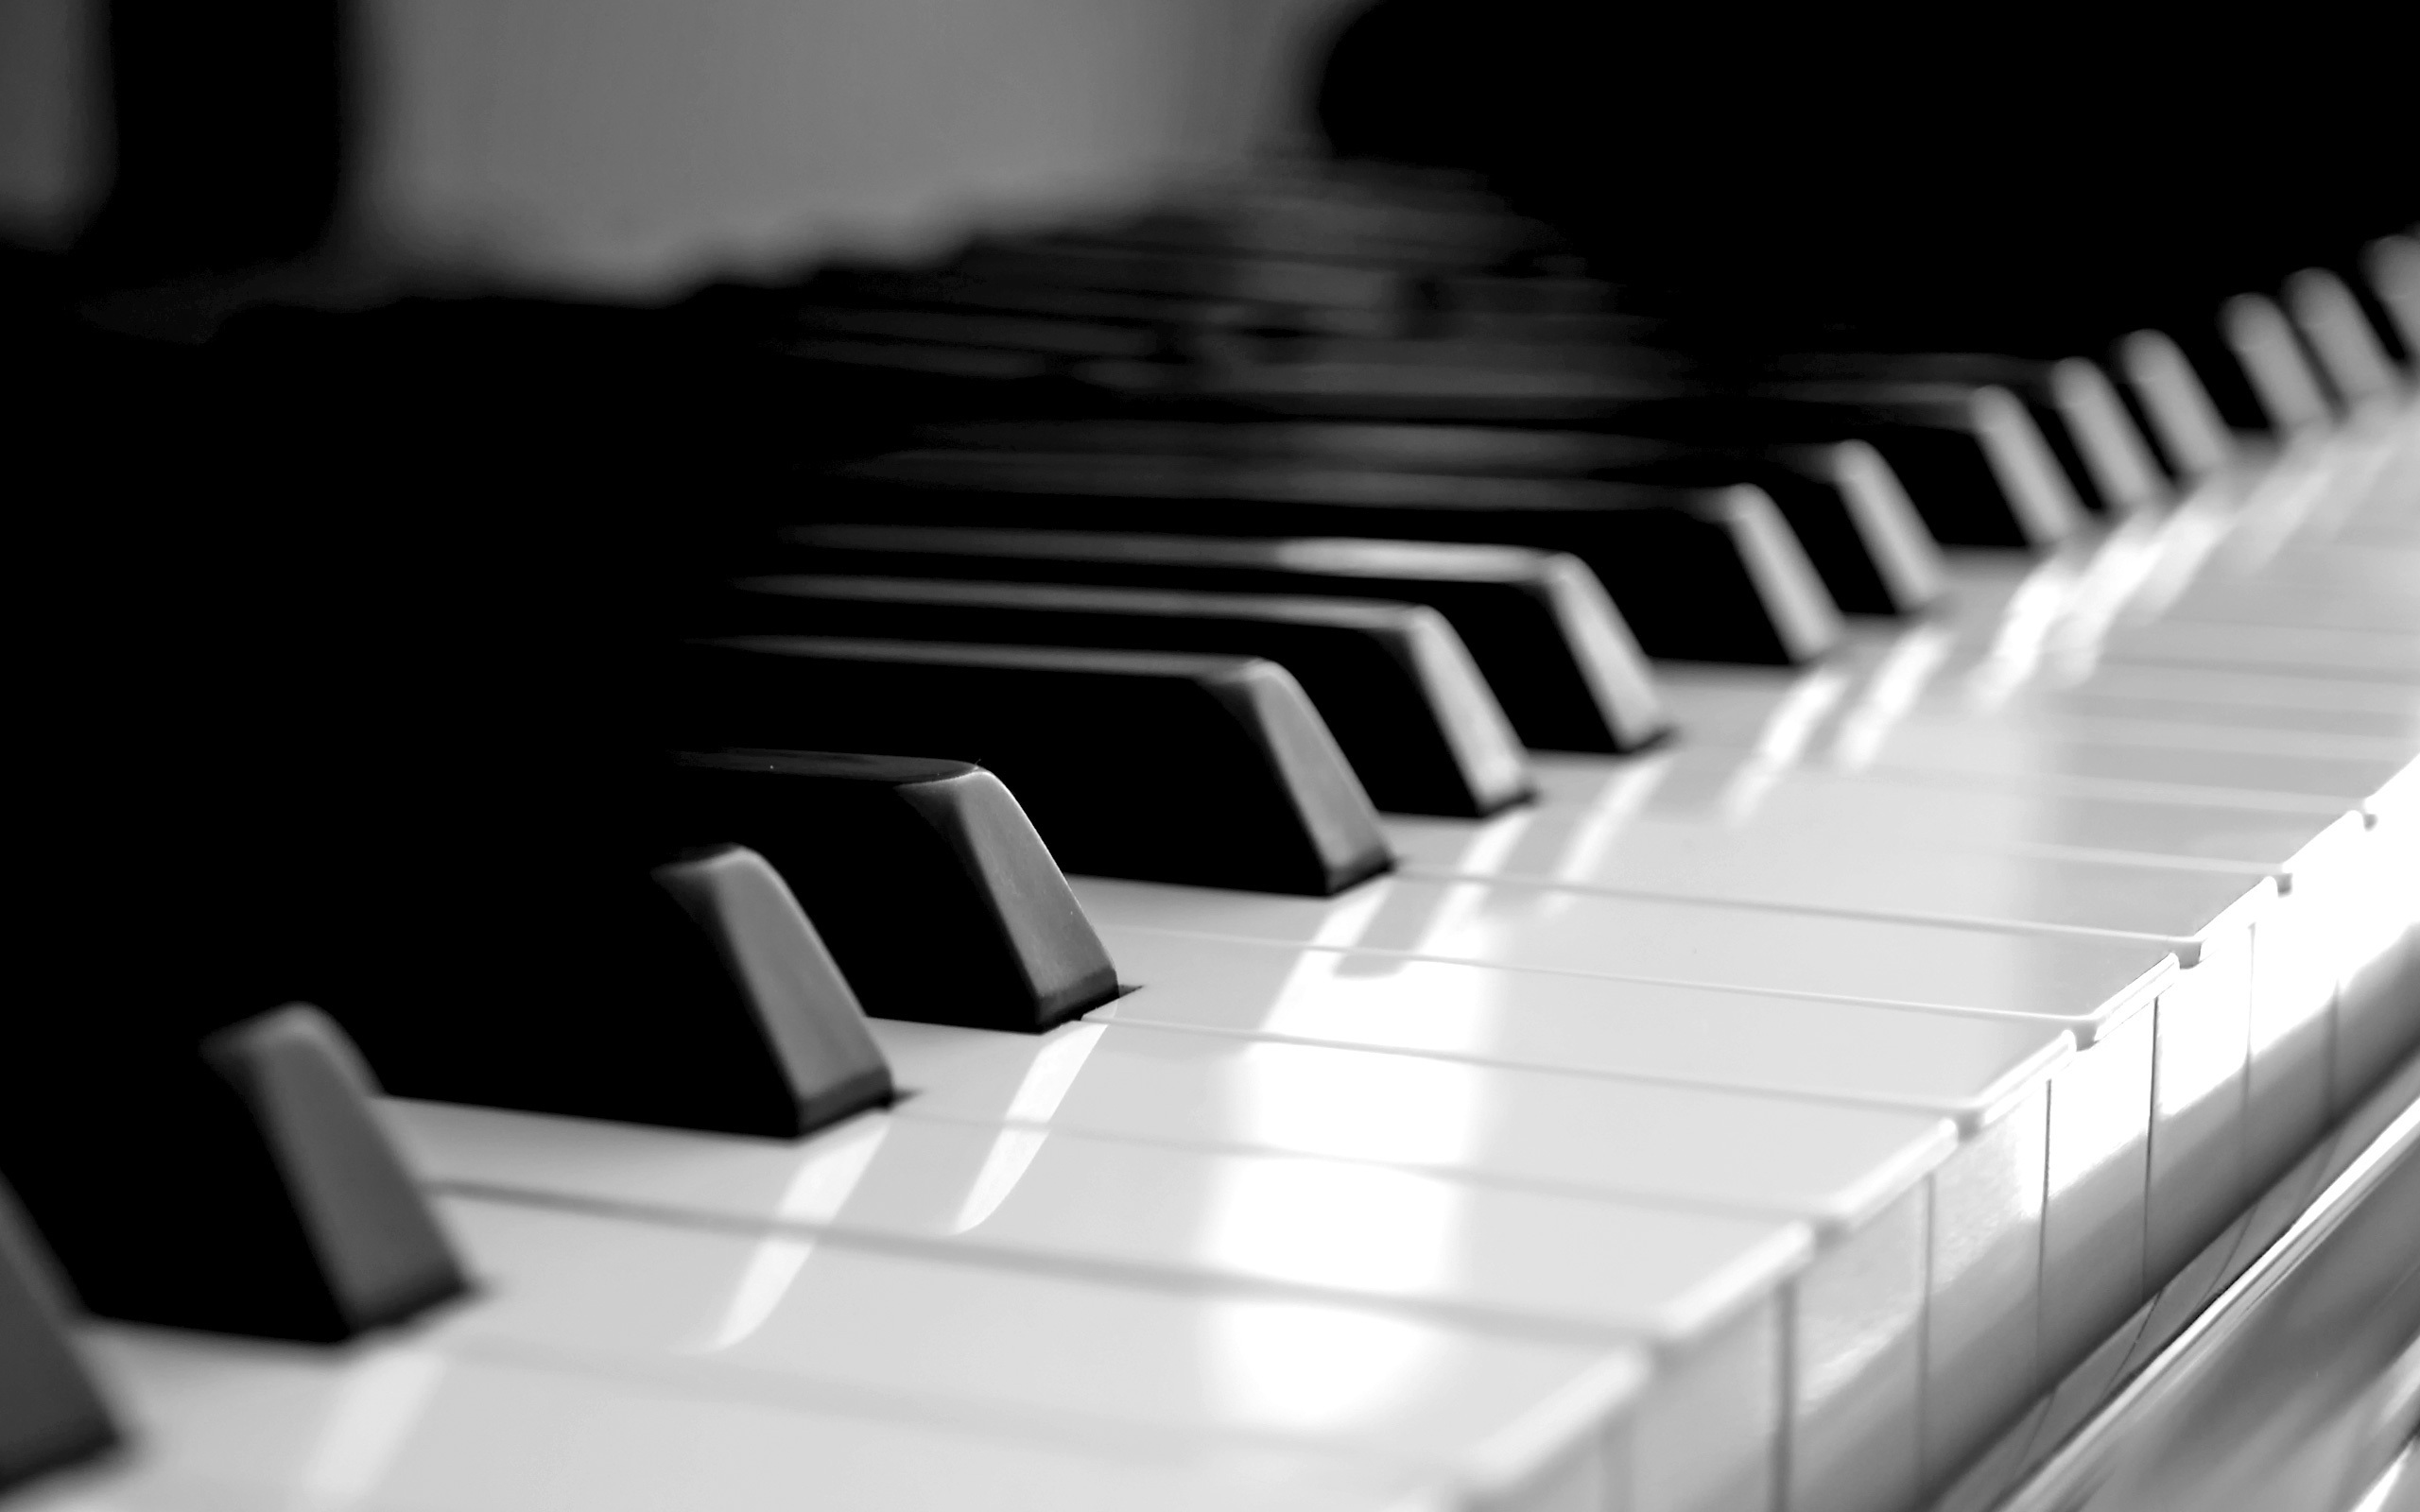 Grand Piano Keys Wallpaperwallpapers Picture Image Hd